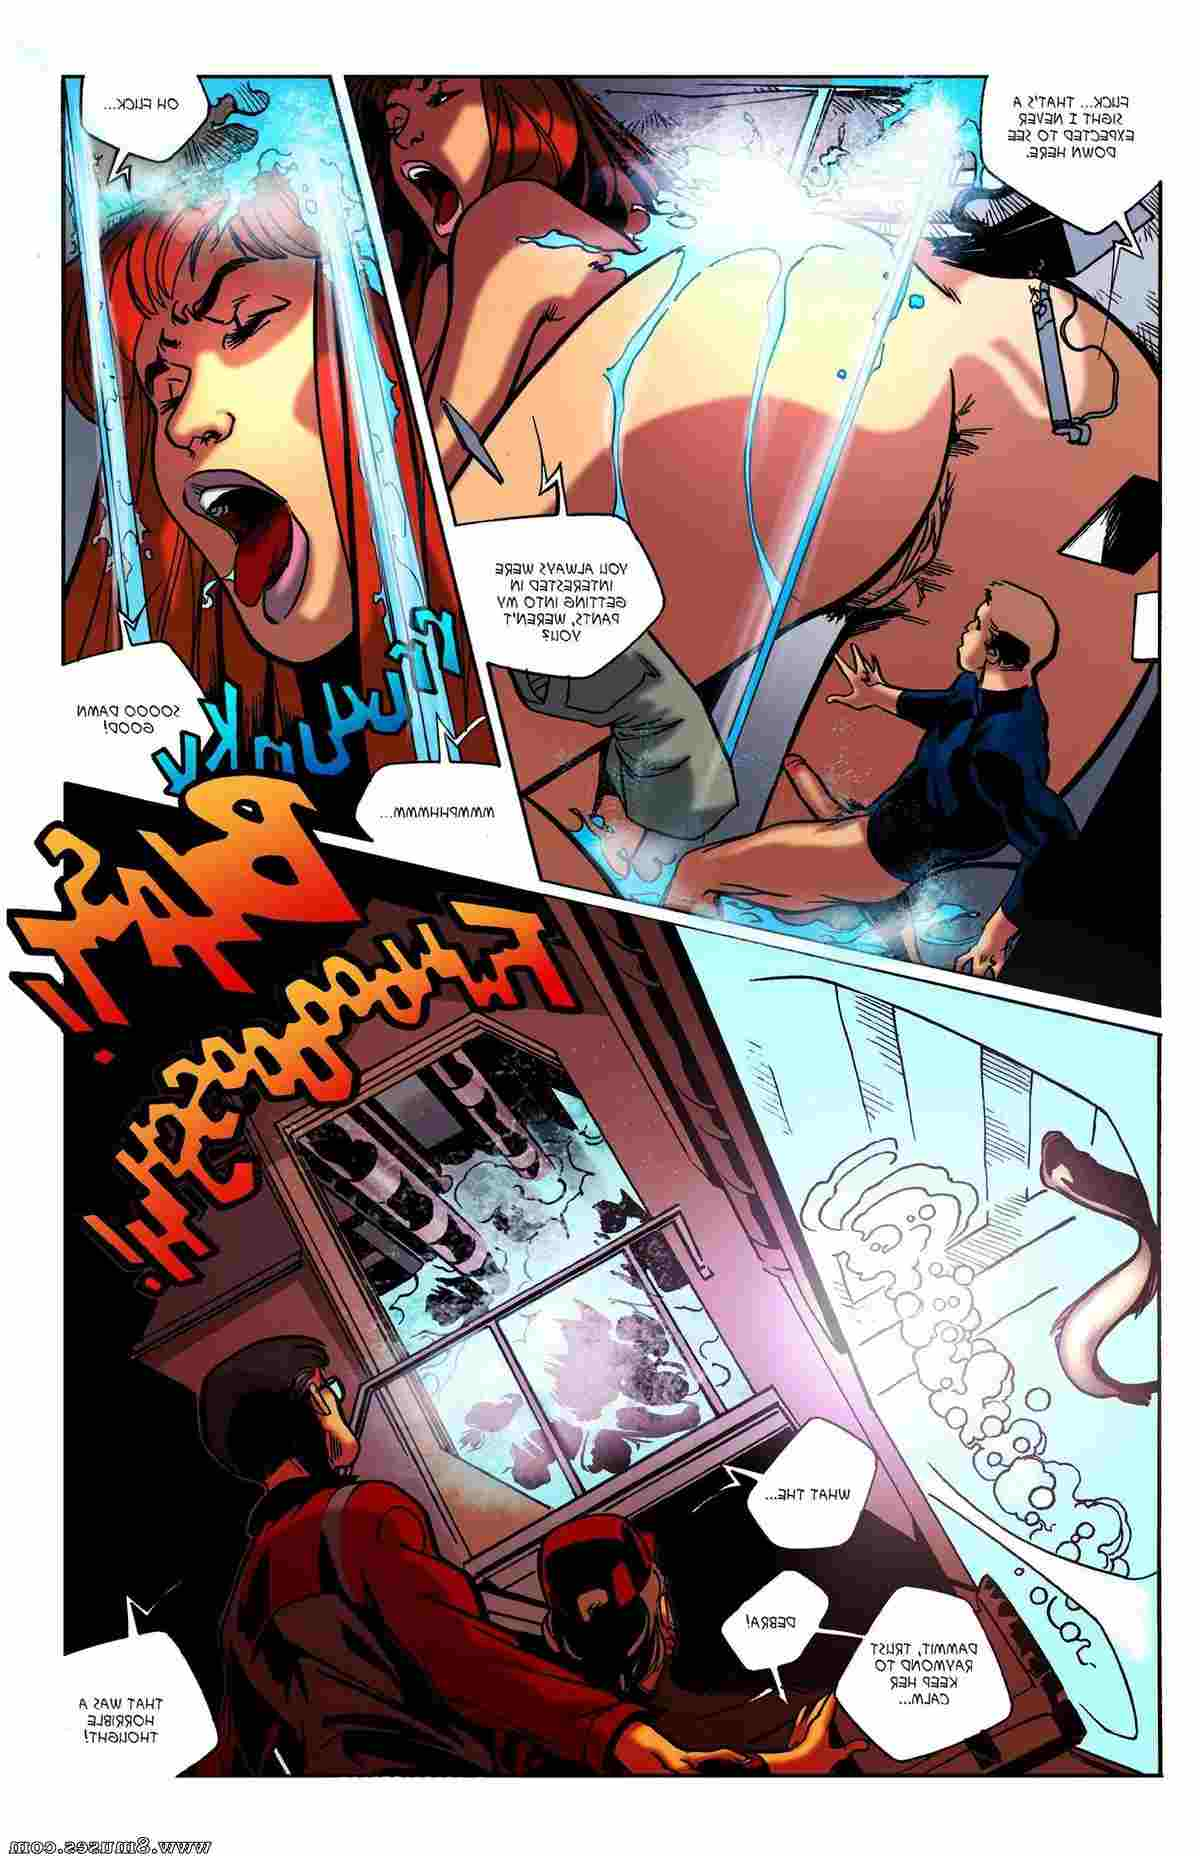 Giantess-Club-Comics/Bubbling-Up-from-the-Abyss Bubbling_Up_from_the_Abyss__8muses_-_Sex_and_Porn_Comics_22.jpg